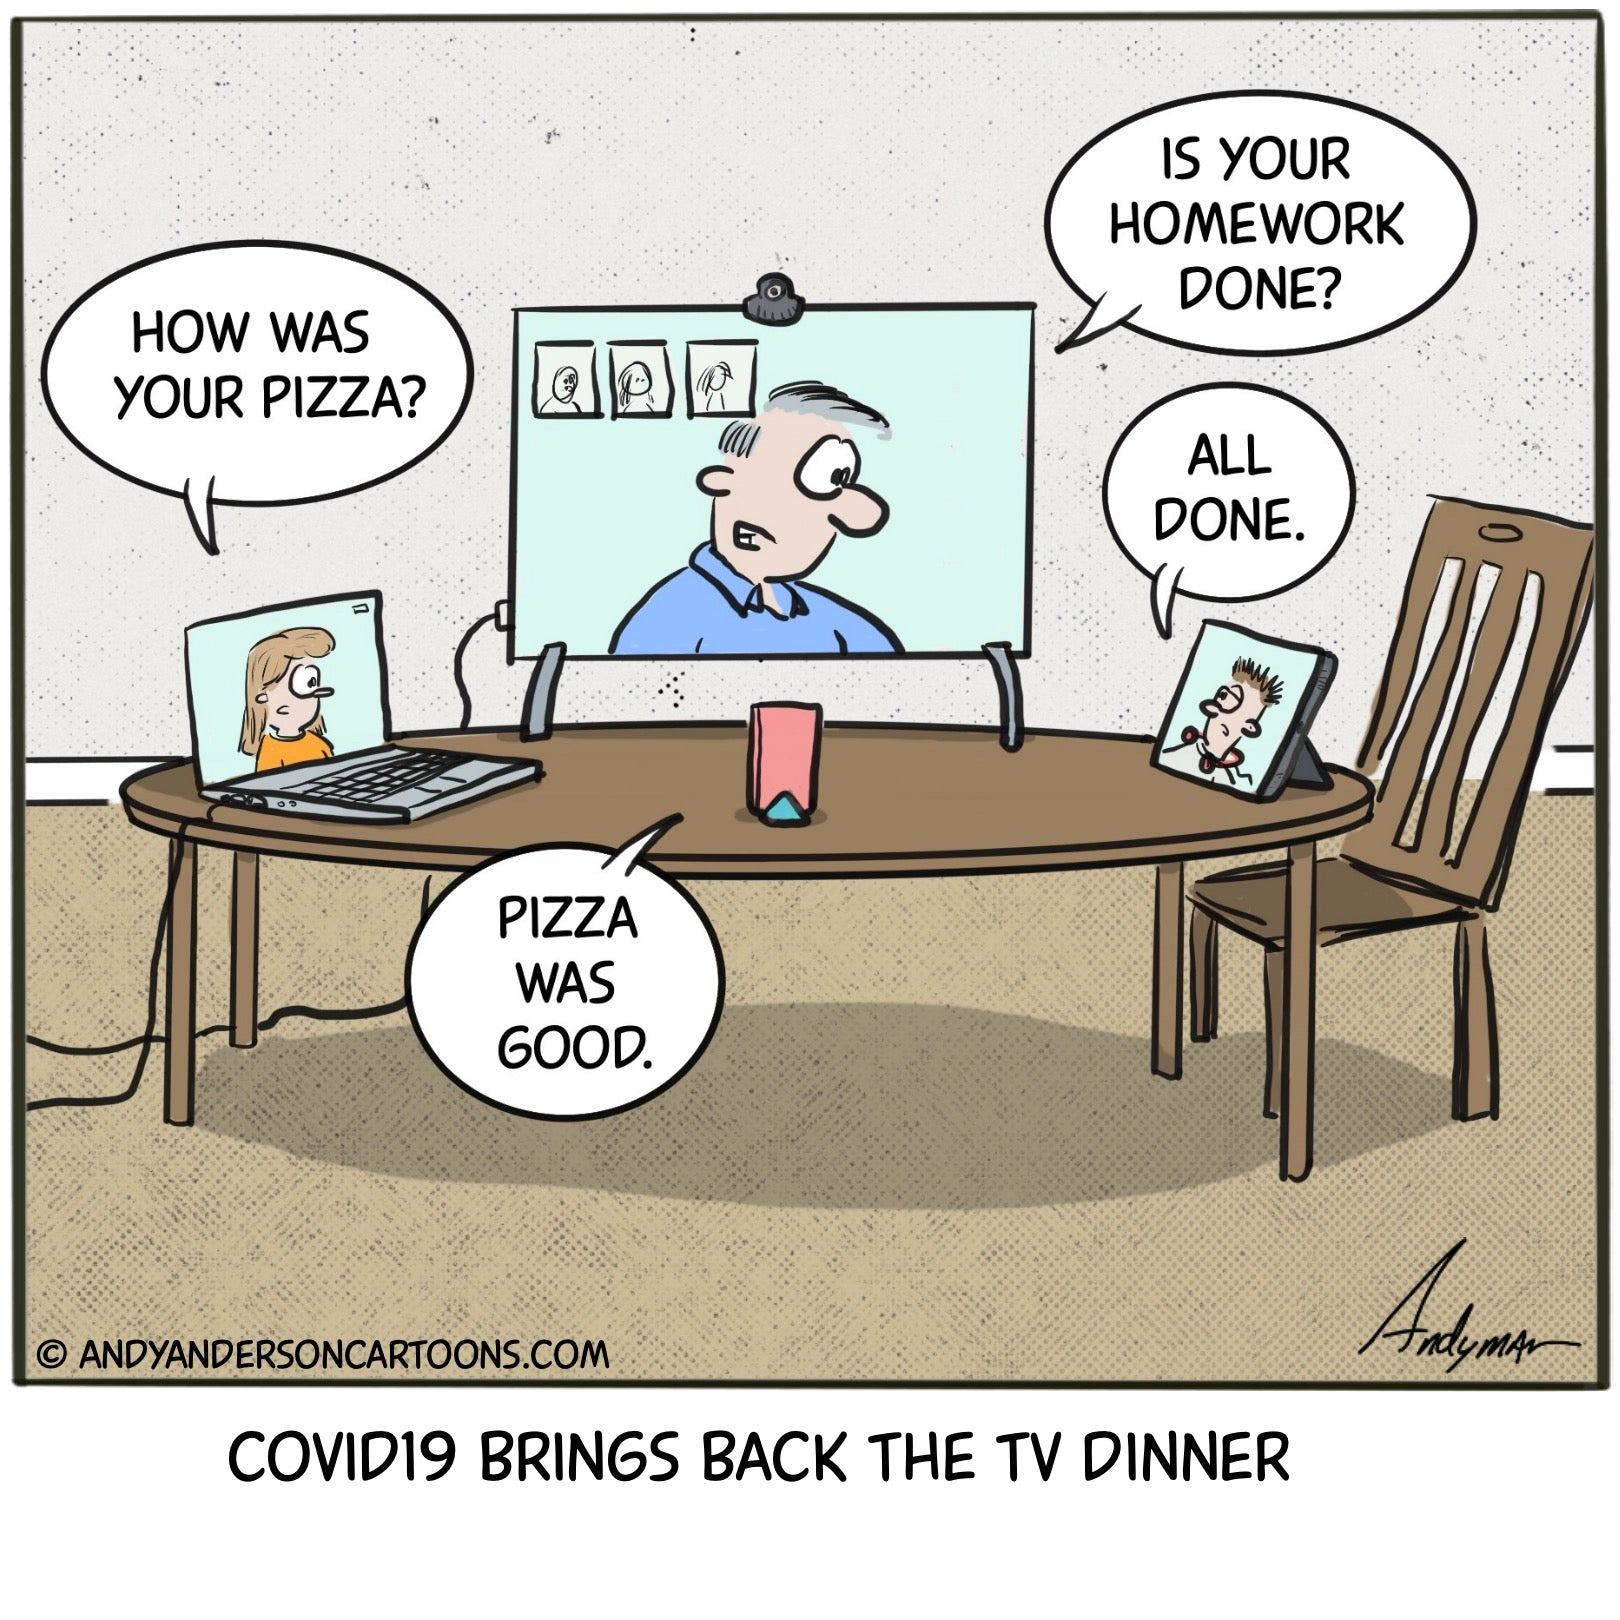 Cartoon about COVID19 brining back the TV dinner